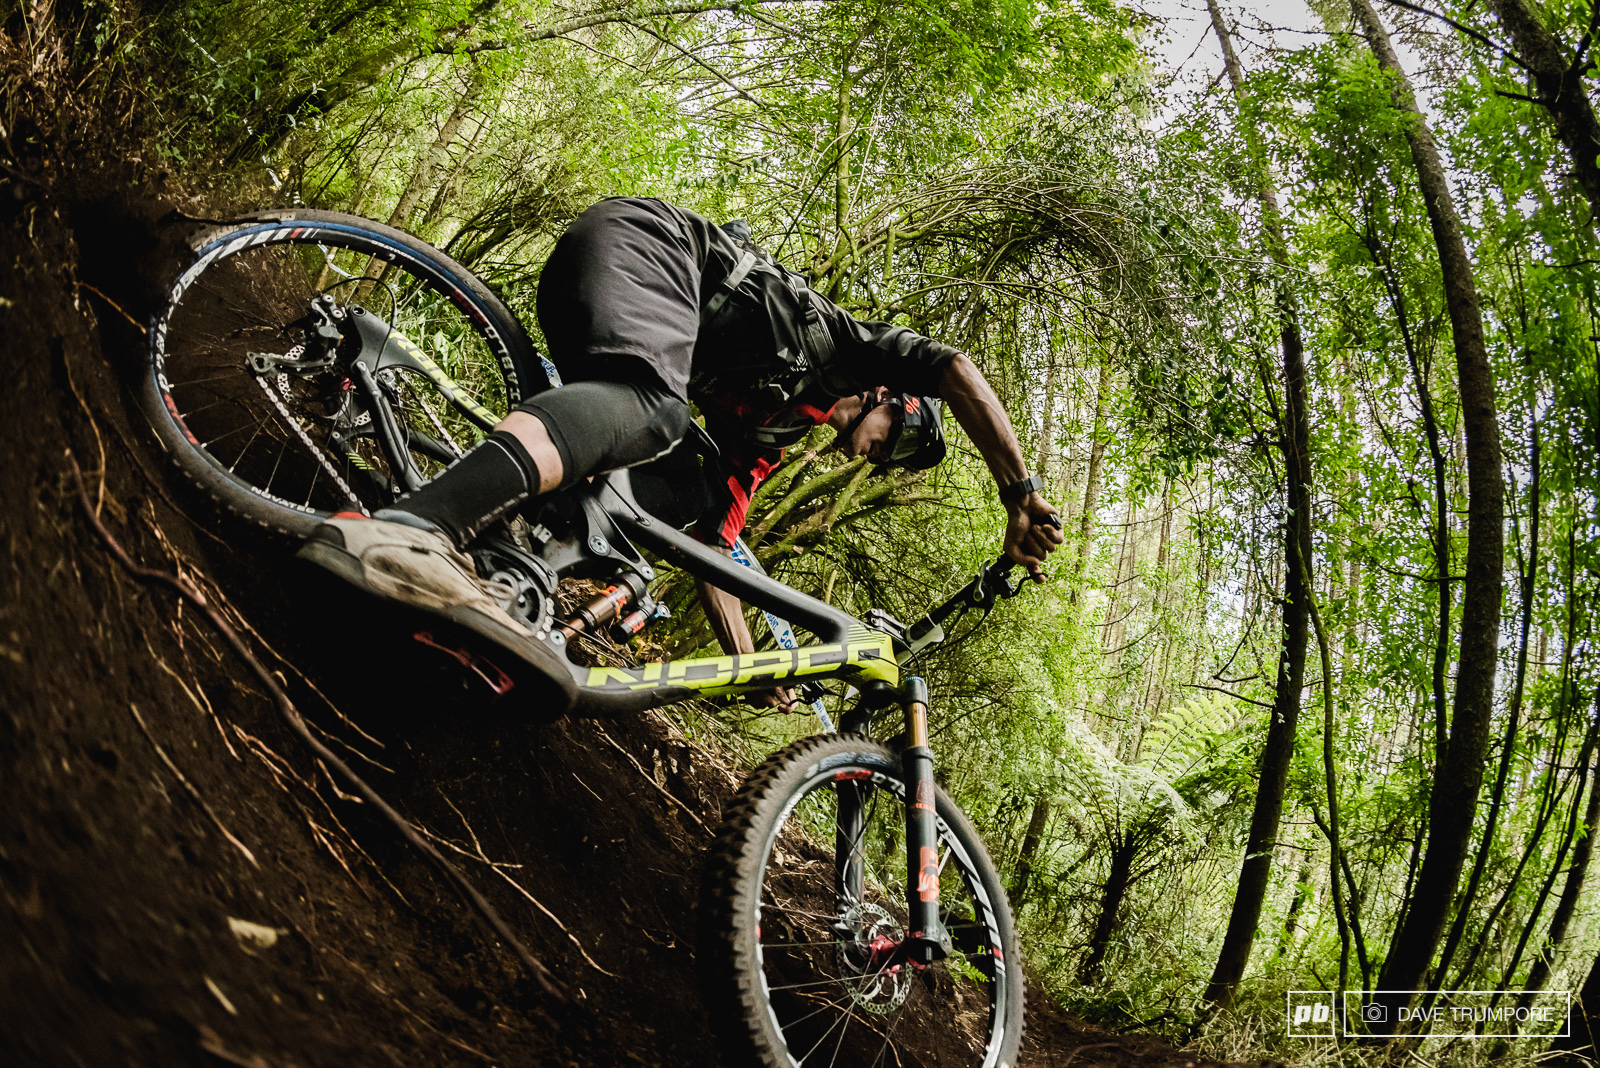 The signature style of Sam Blenkinsop is unmistakeable. Could Blenki be the dark horse this weekend on his home turf